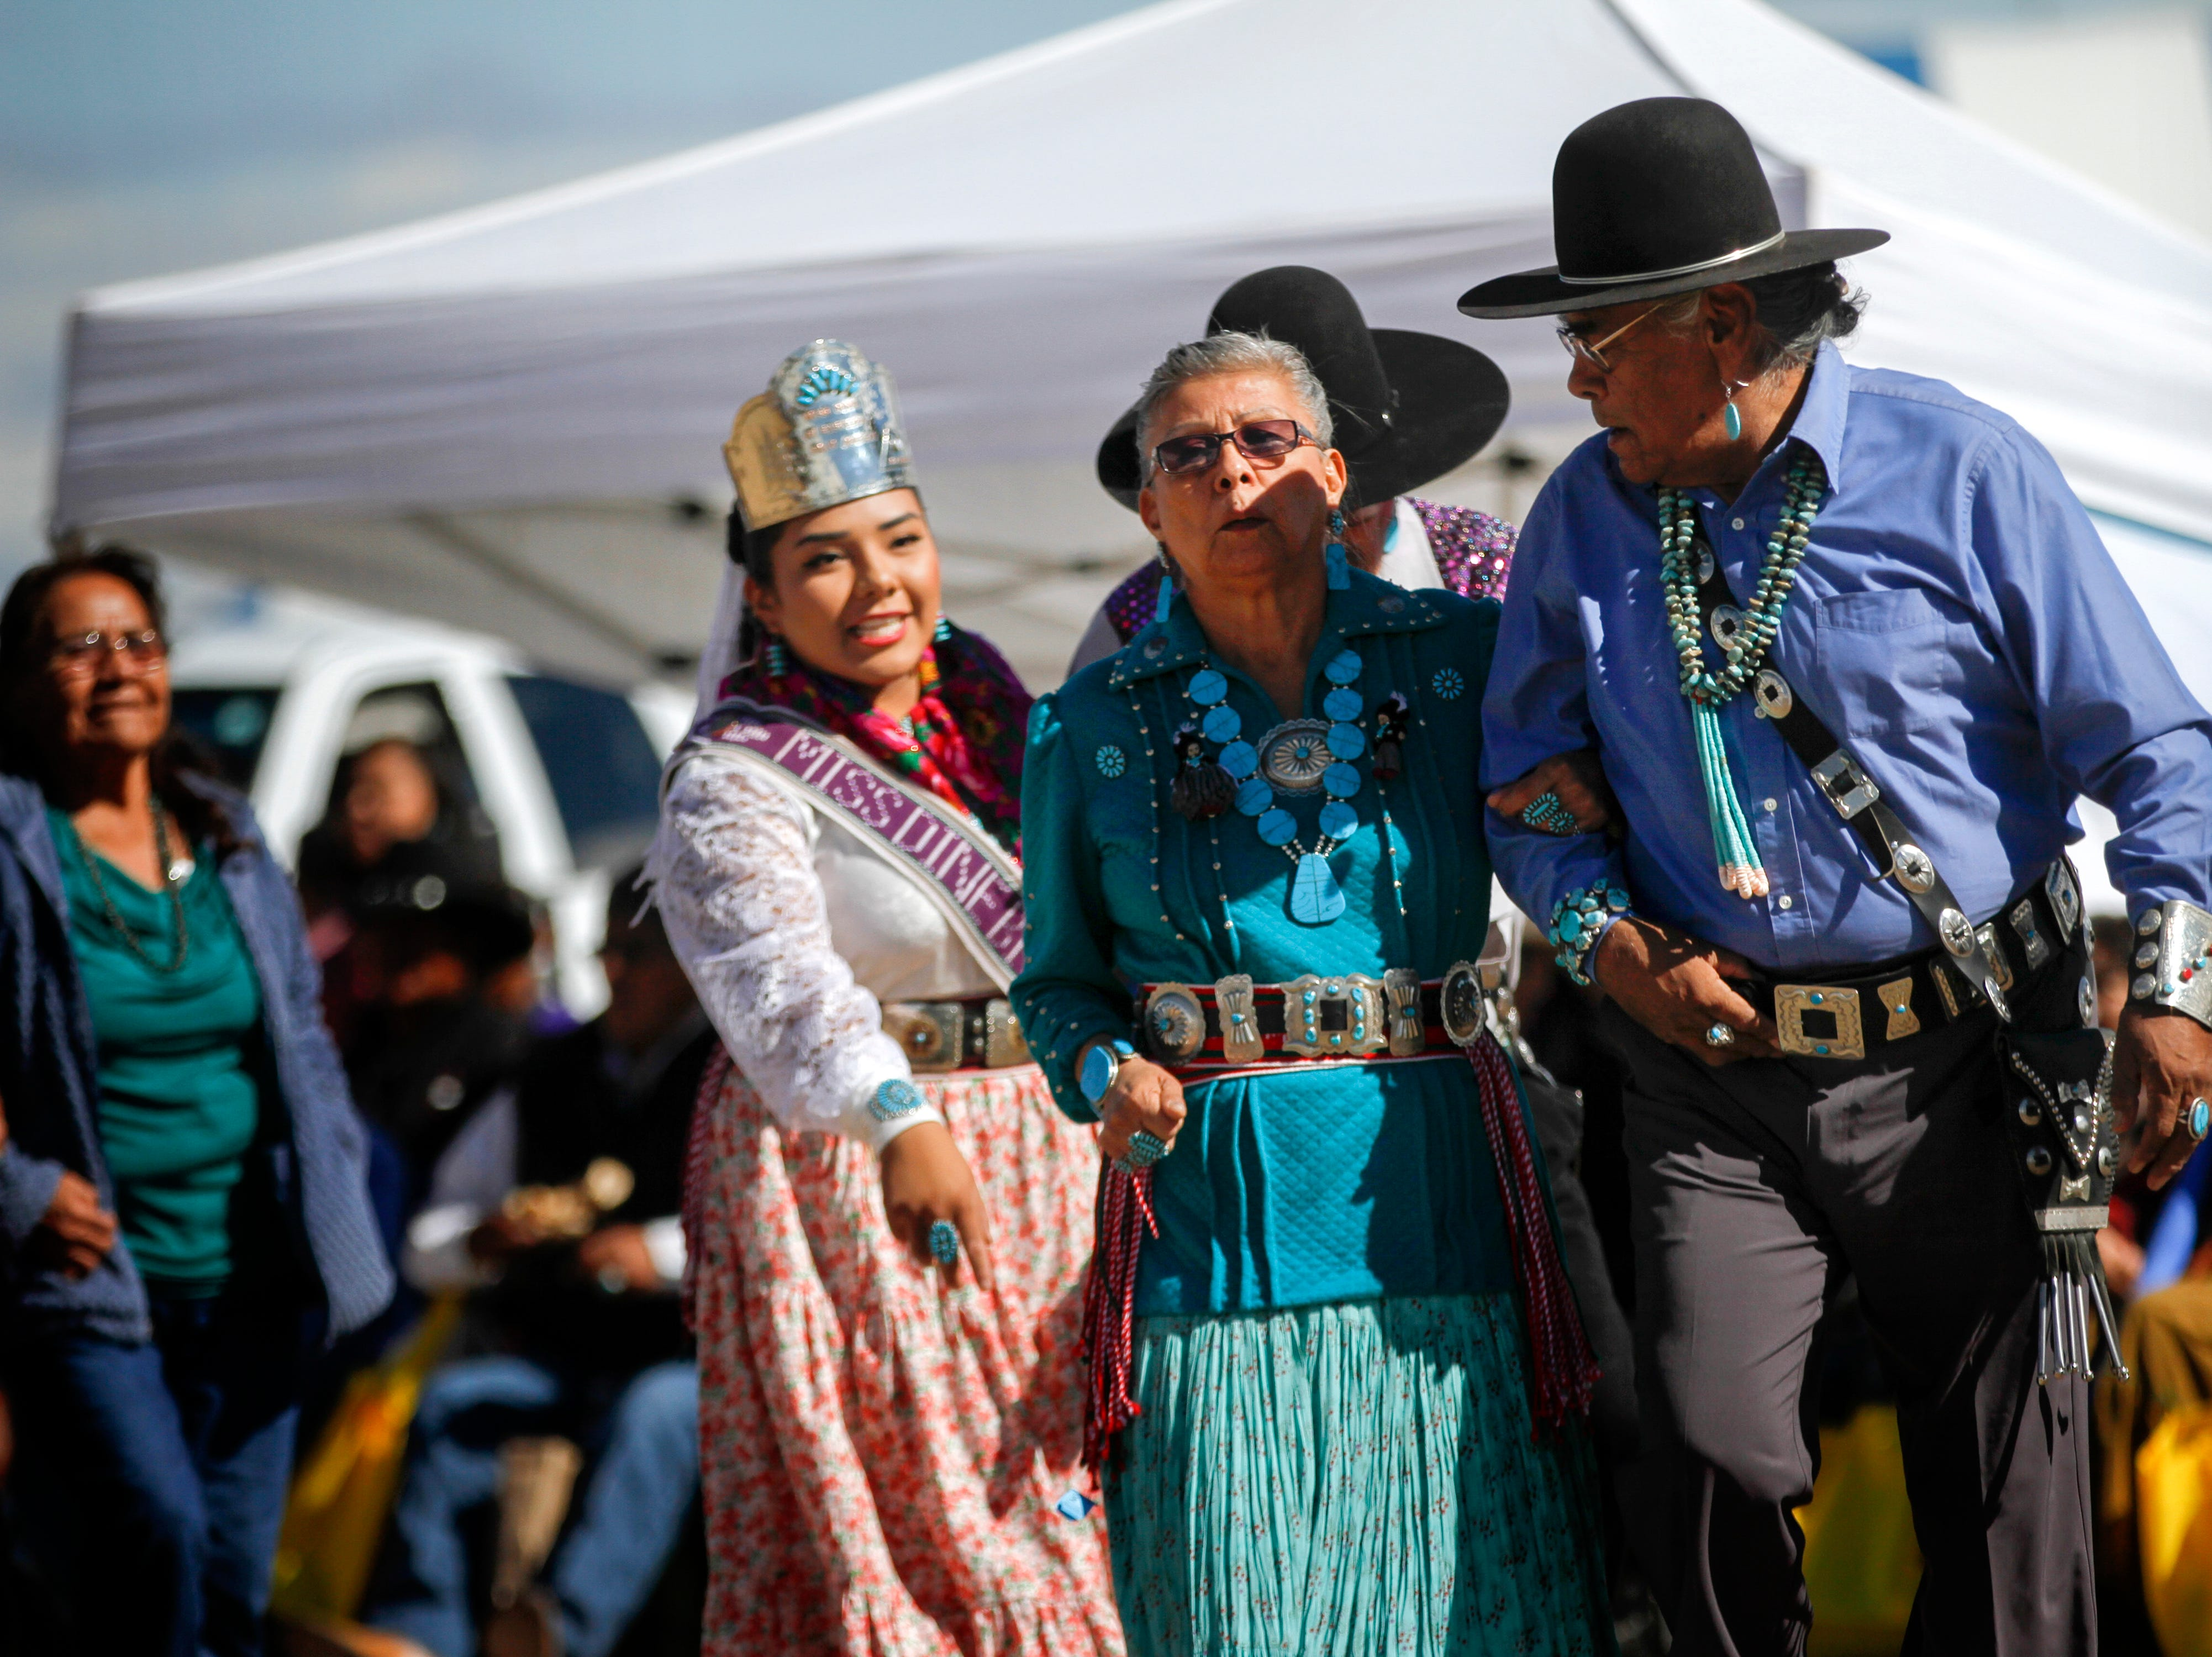 Participants dance in during the Elderfest Song and Dance activity, Thursday, Oct. 4, 2018 during the Northern Navajo Nation Fair at the Song and Dance Arena in Shiprock.